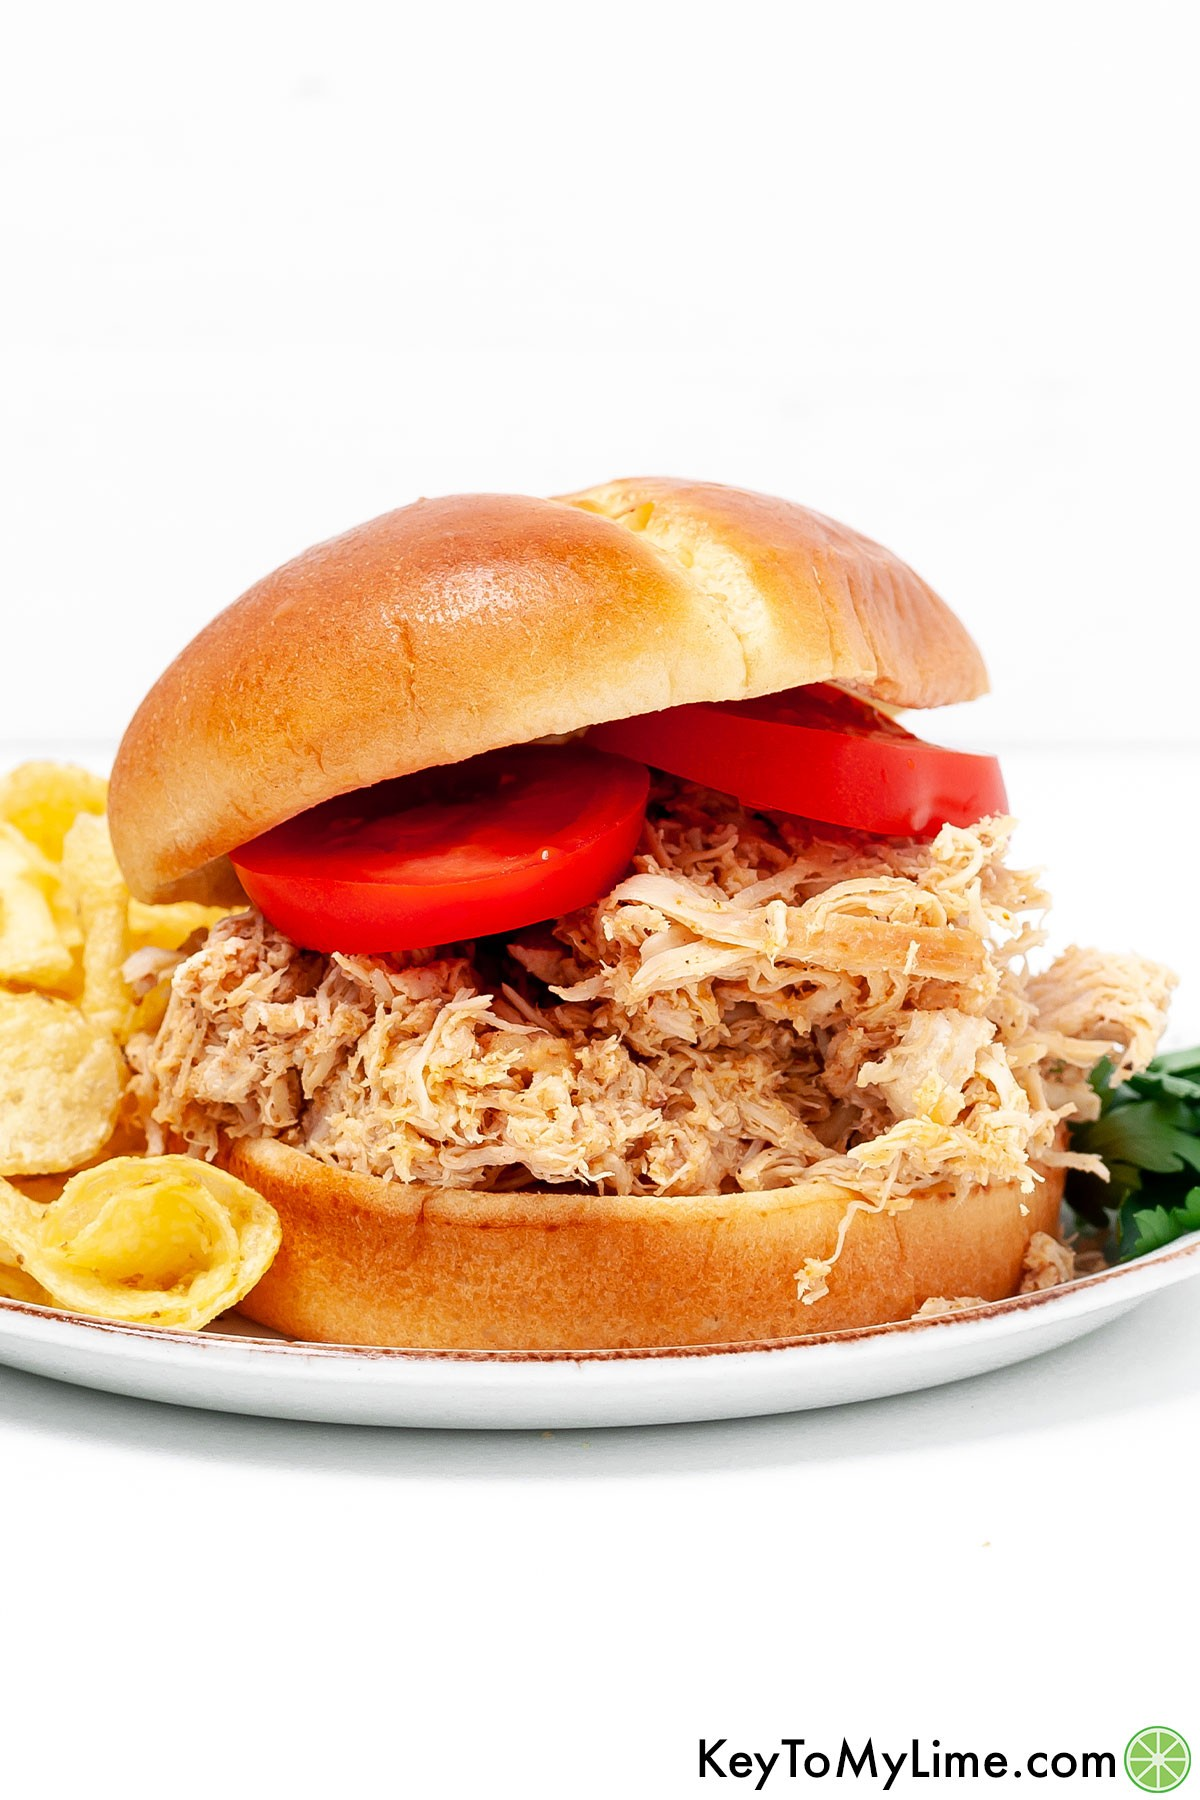 A pulled chicken sandwich next to potato chips.